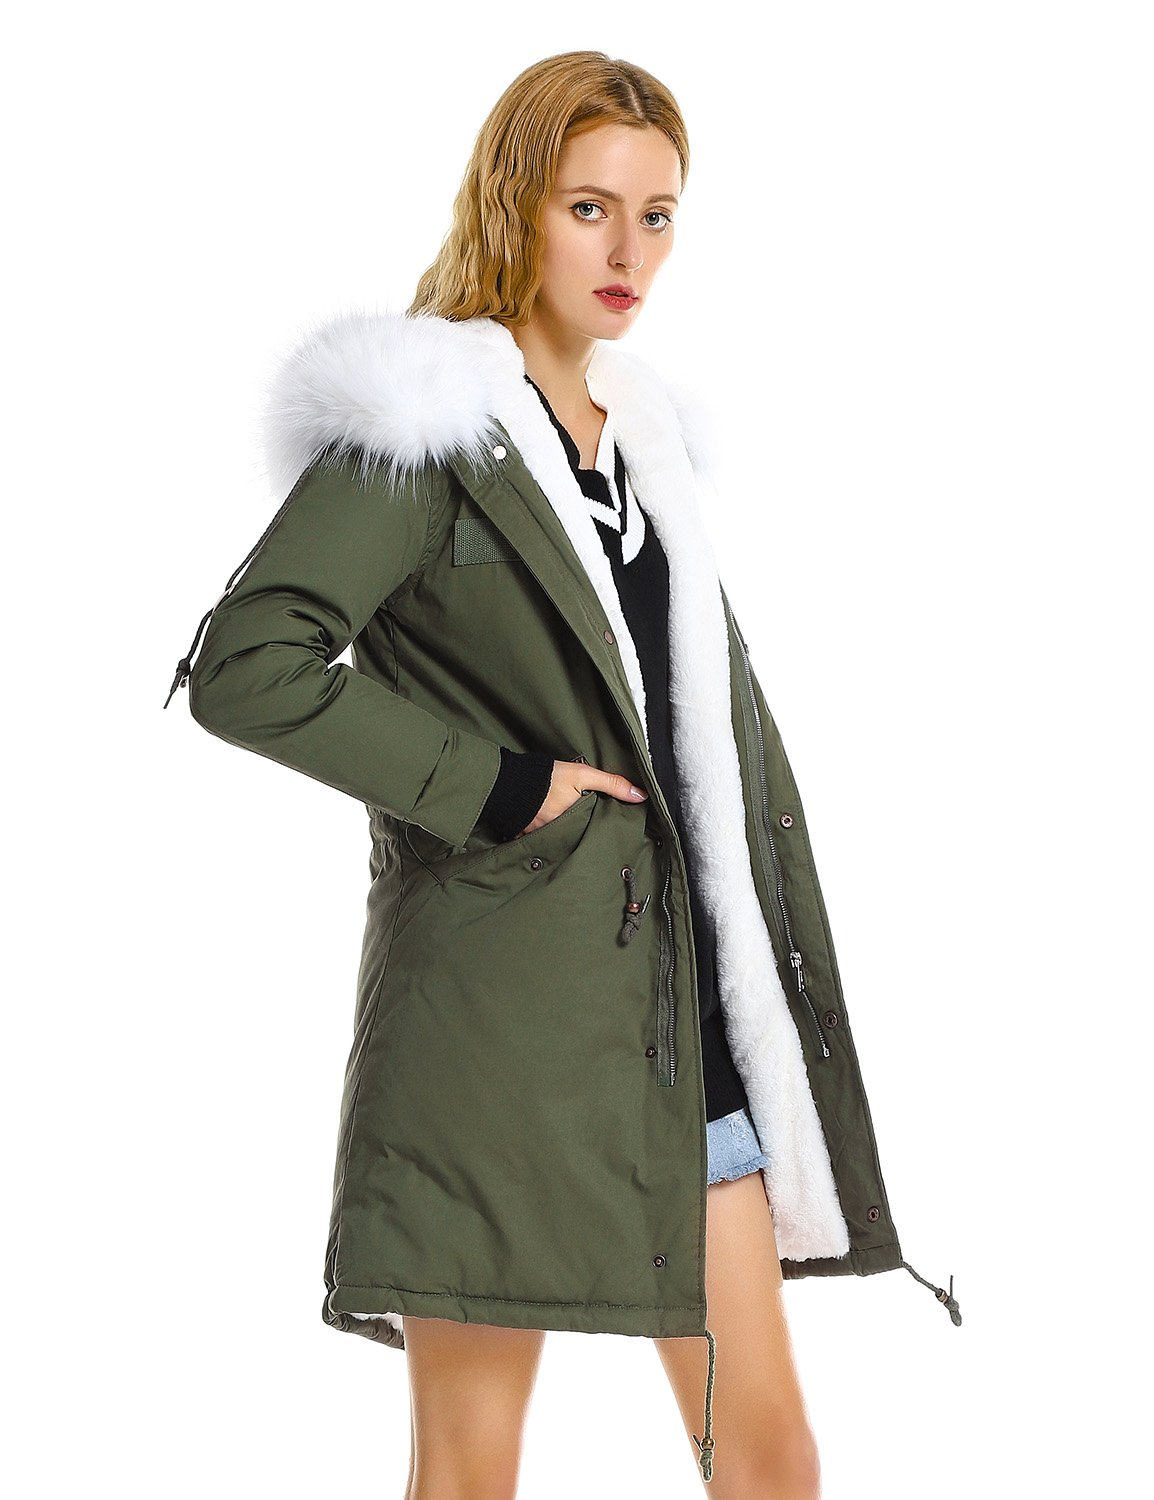 ZAN.STYLE Women Warm Winter Coat Zip up Long Fleece Lined Fishtail Parka Jacket with Faux Fur Hood (Green and White, M)